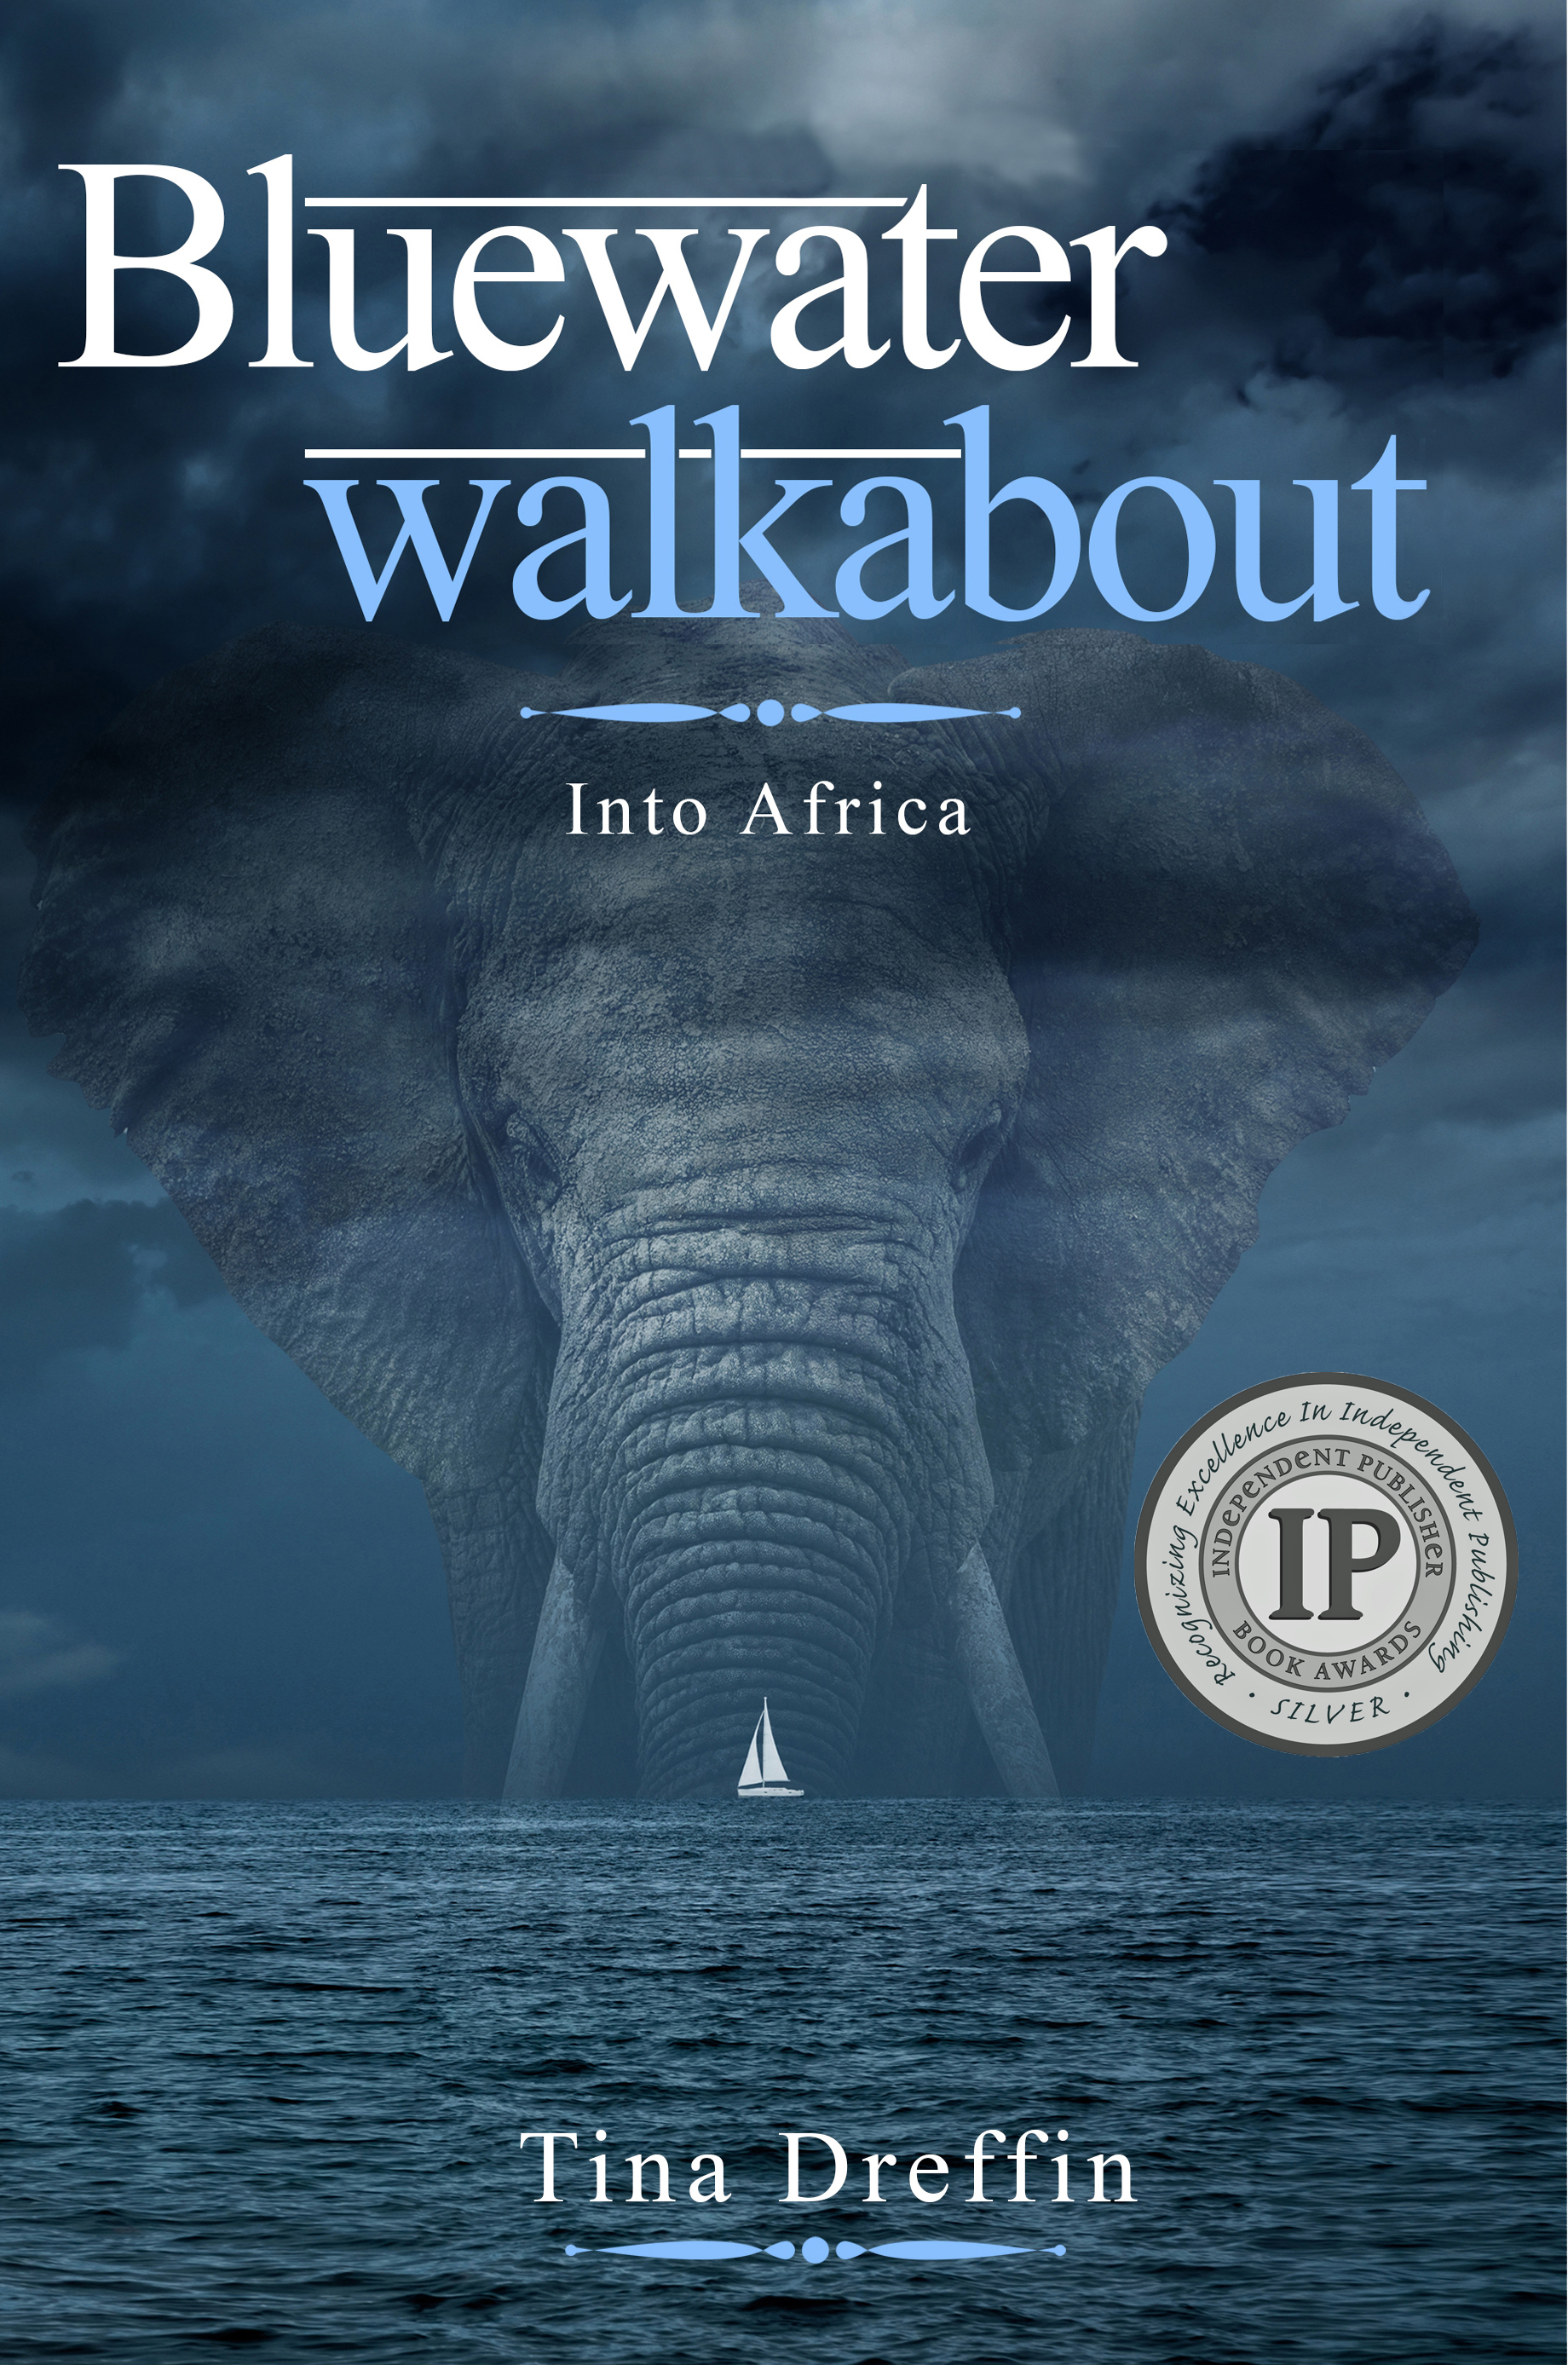 Bluewater Walkabout By Tina Dreffin On Bookshelves